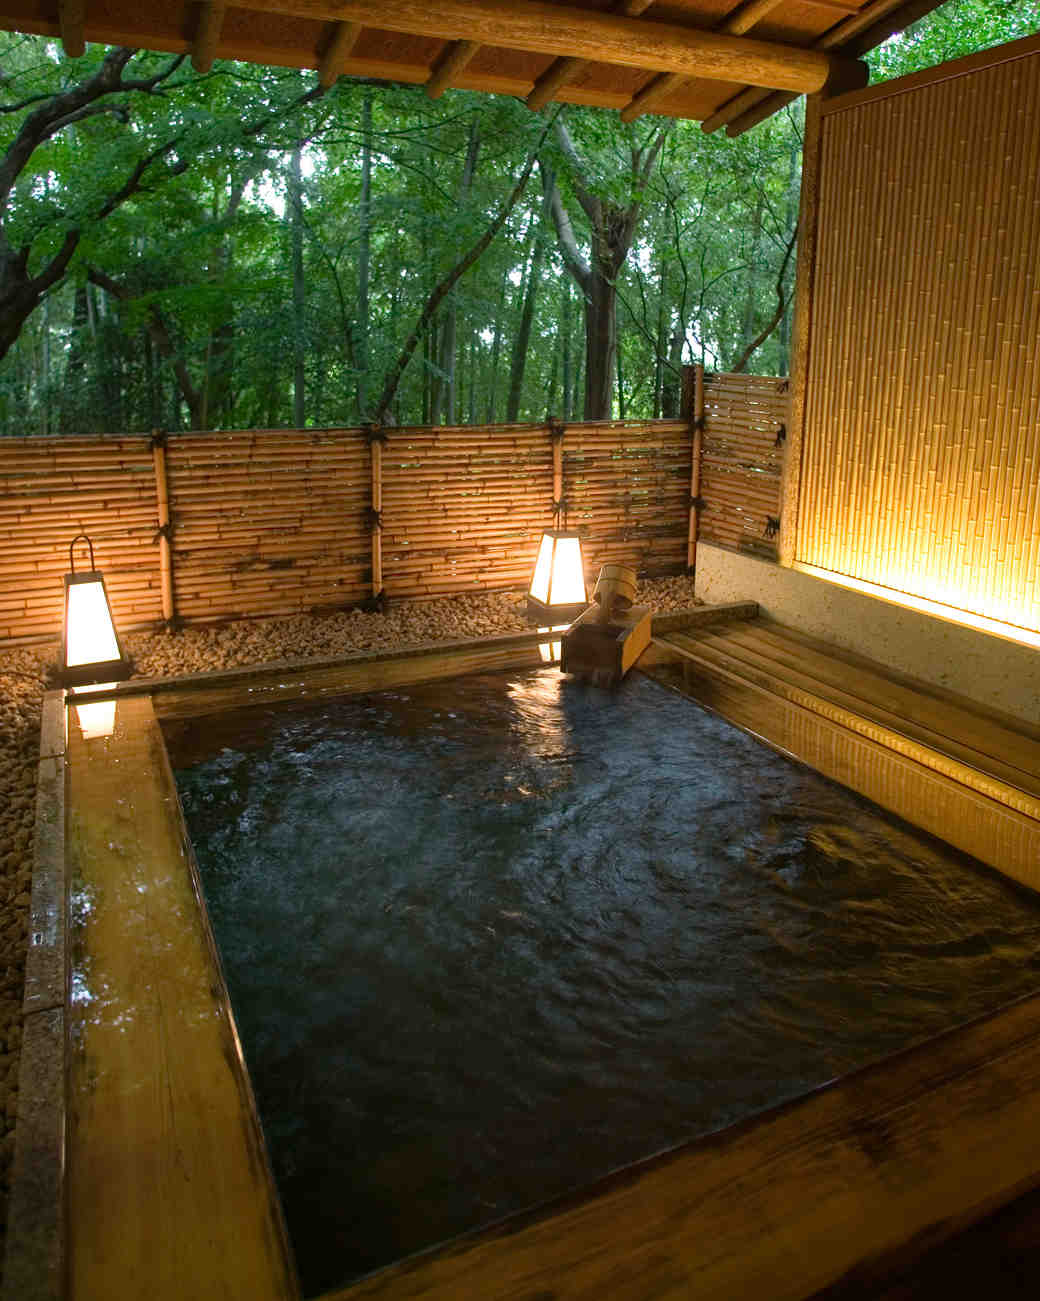 Forum on this topic: The Top Eco-Friendly Honeymoon Ideas for 2015, the-top-eco-friendly-honeymoon-ideas-for-2015/